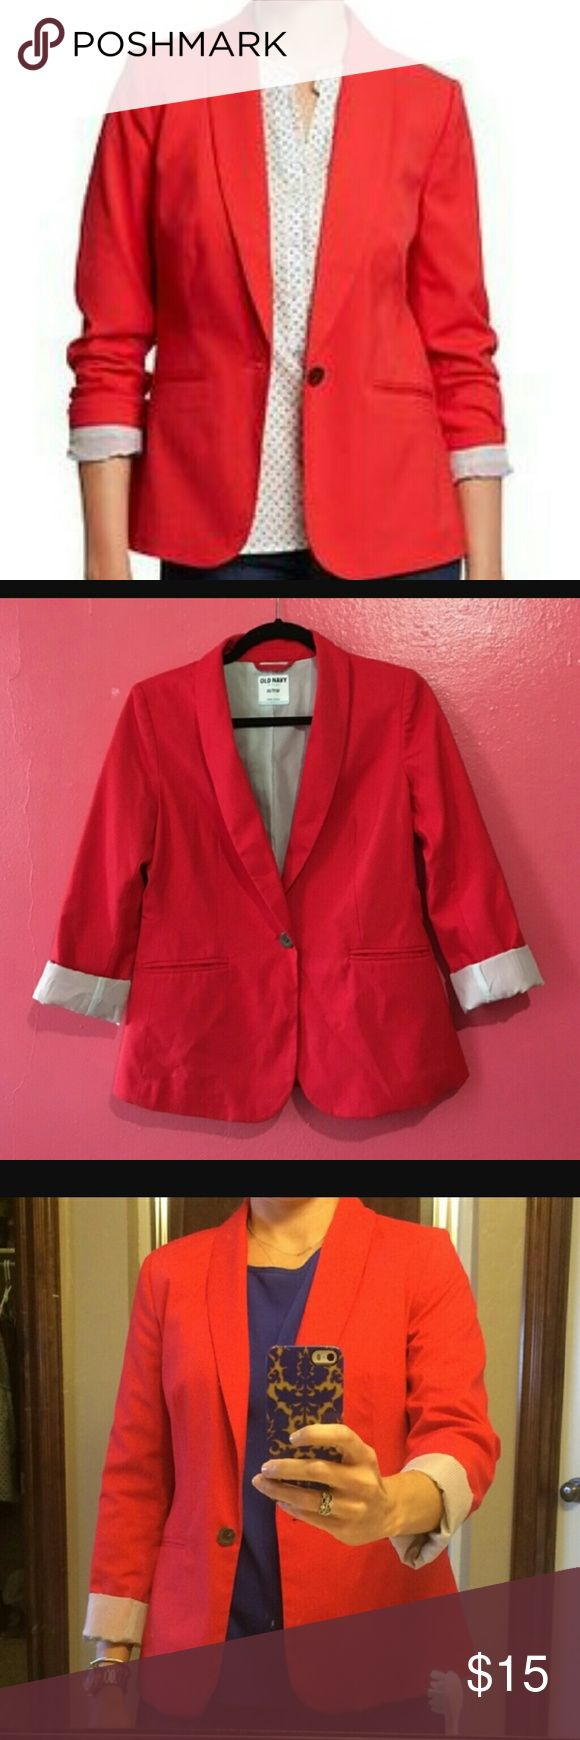 Old Navy Blazer Cherry Red blazer from Old Navy. Excellent overall condition. Purchase to replace my other red blazer but found something else so only worn 2-3 times.  There is a light blue pinstripe on lining, that is extremely cute when cuffed. 66%polyester 32%rayon Old Navy Jackets & Coats Blazers